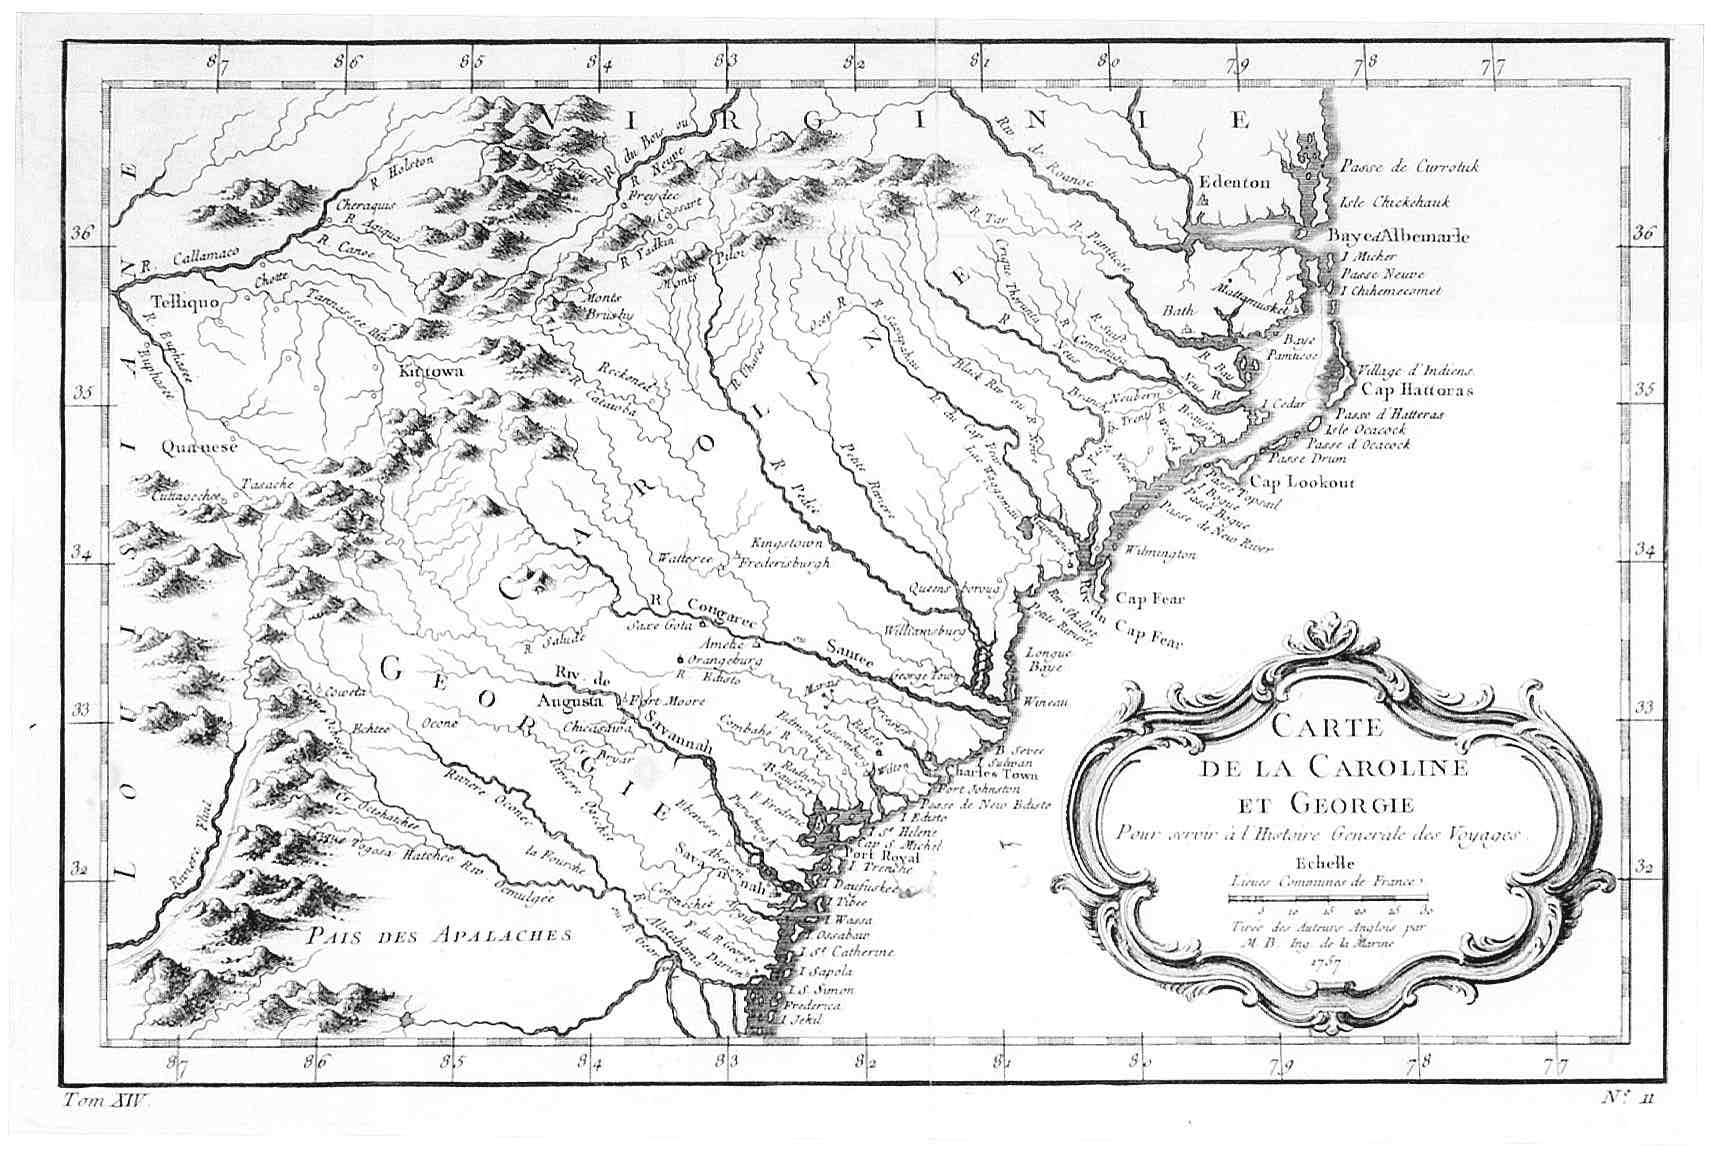 Map Of Georgia And Florida.The Usgenweb Archives Digital Map Library Georgia Maps Index